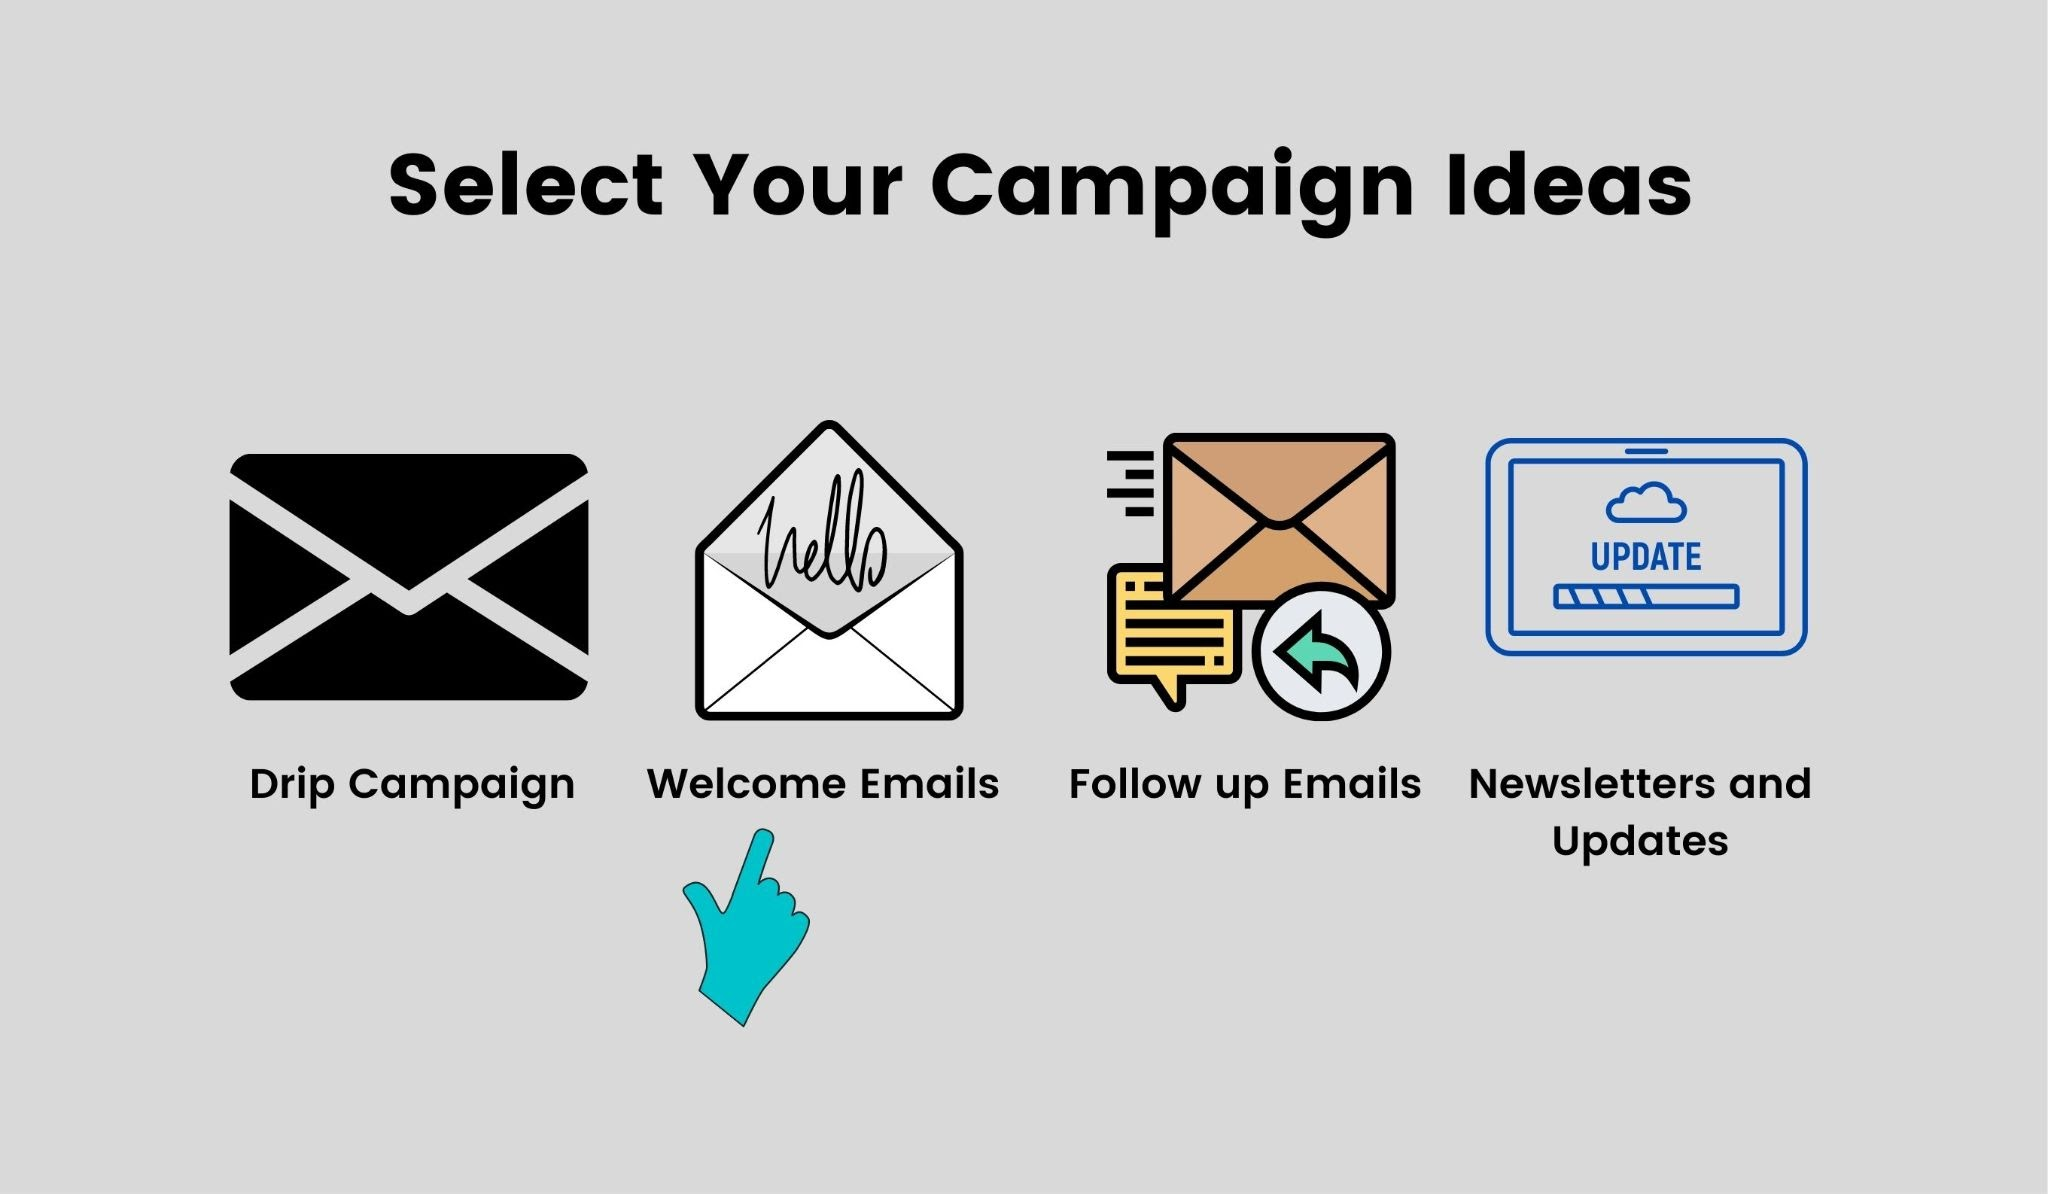 Different ways to find campaign ideas while email marketing for real estate.